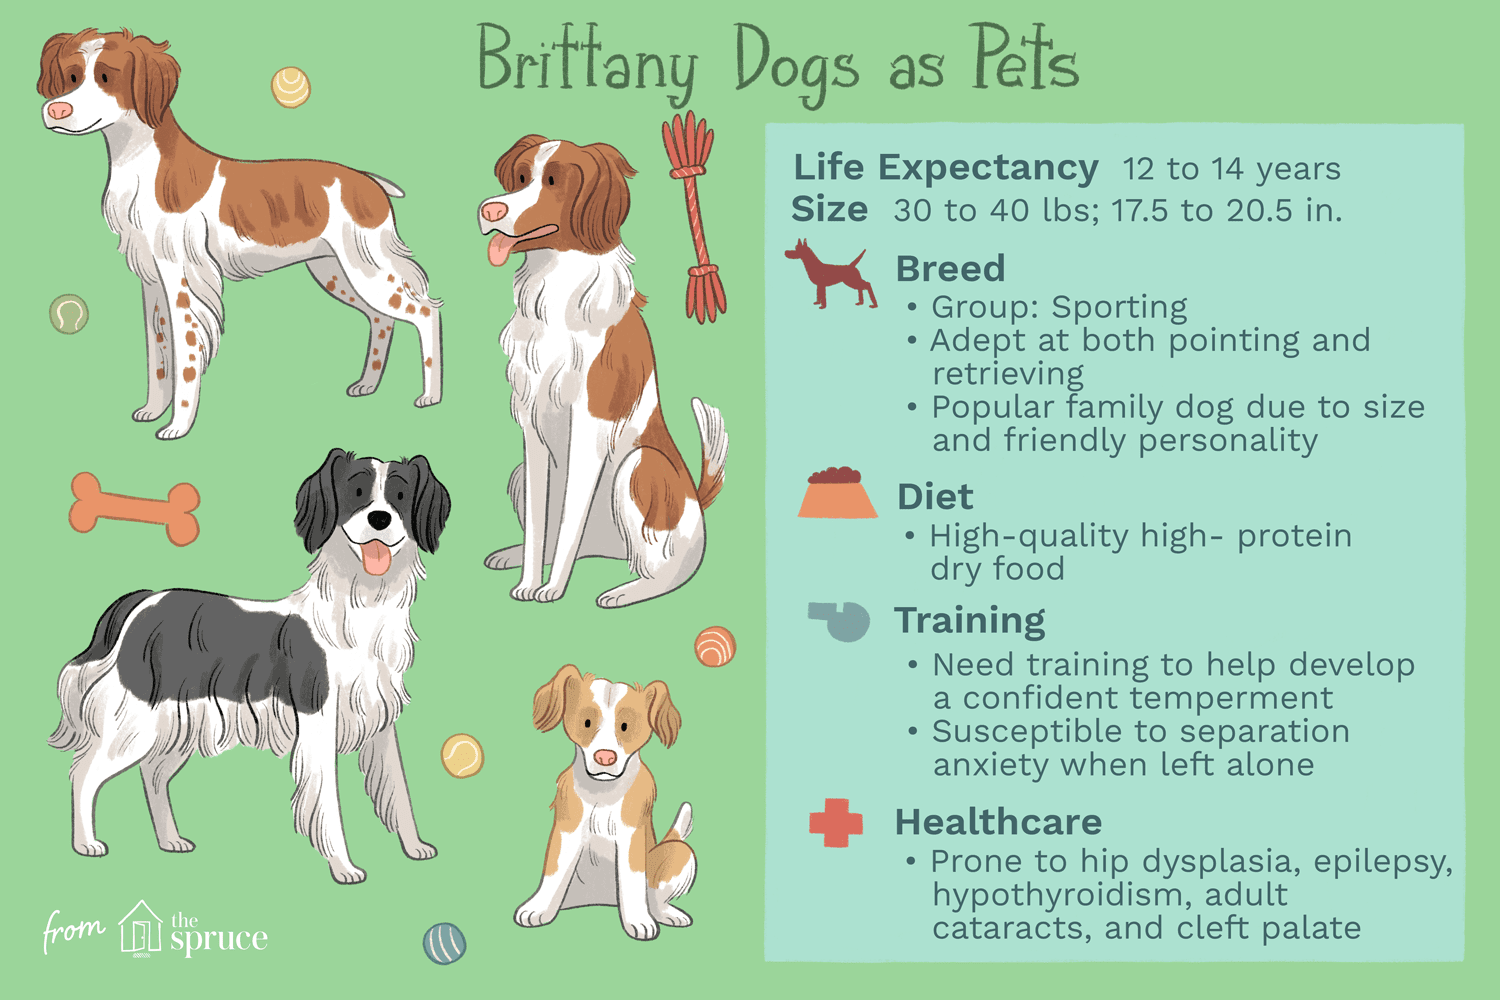 brittany dogs as pets illustration